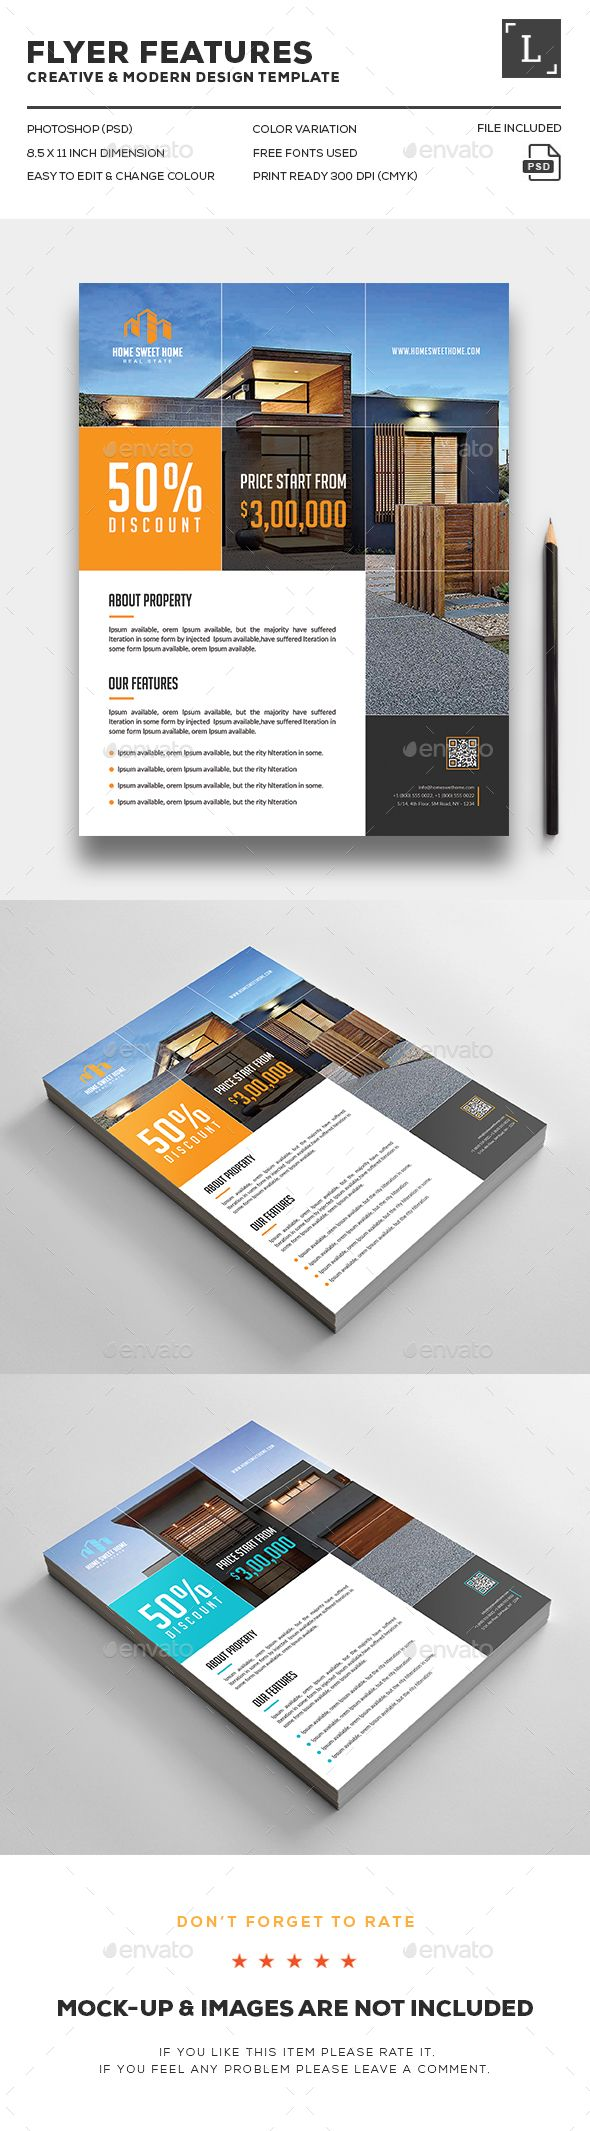 224 best Templates images on Pinterest | Real estate business ...